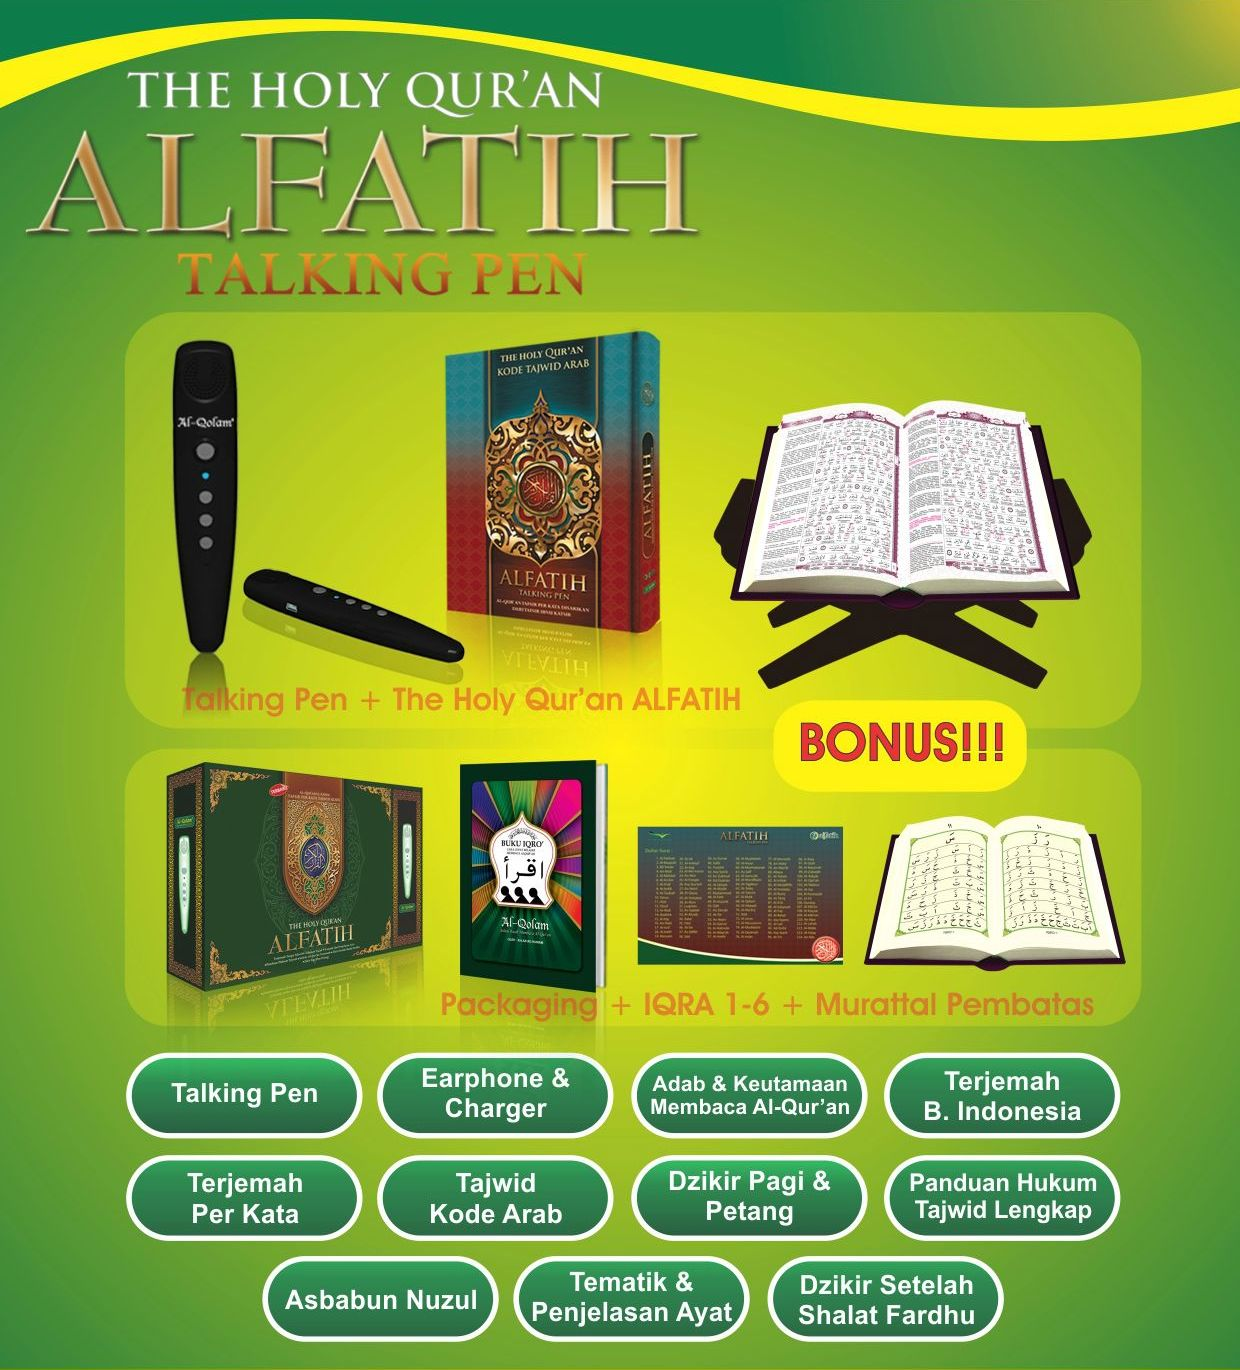 Al-Quran Al-Fatih Plus Talking Pen Fitur